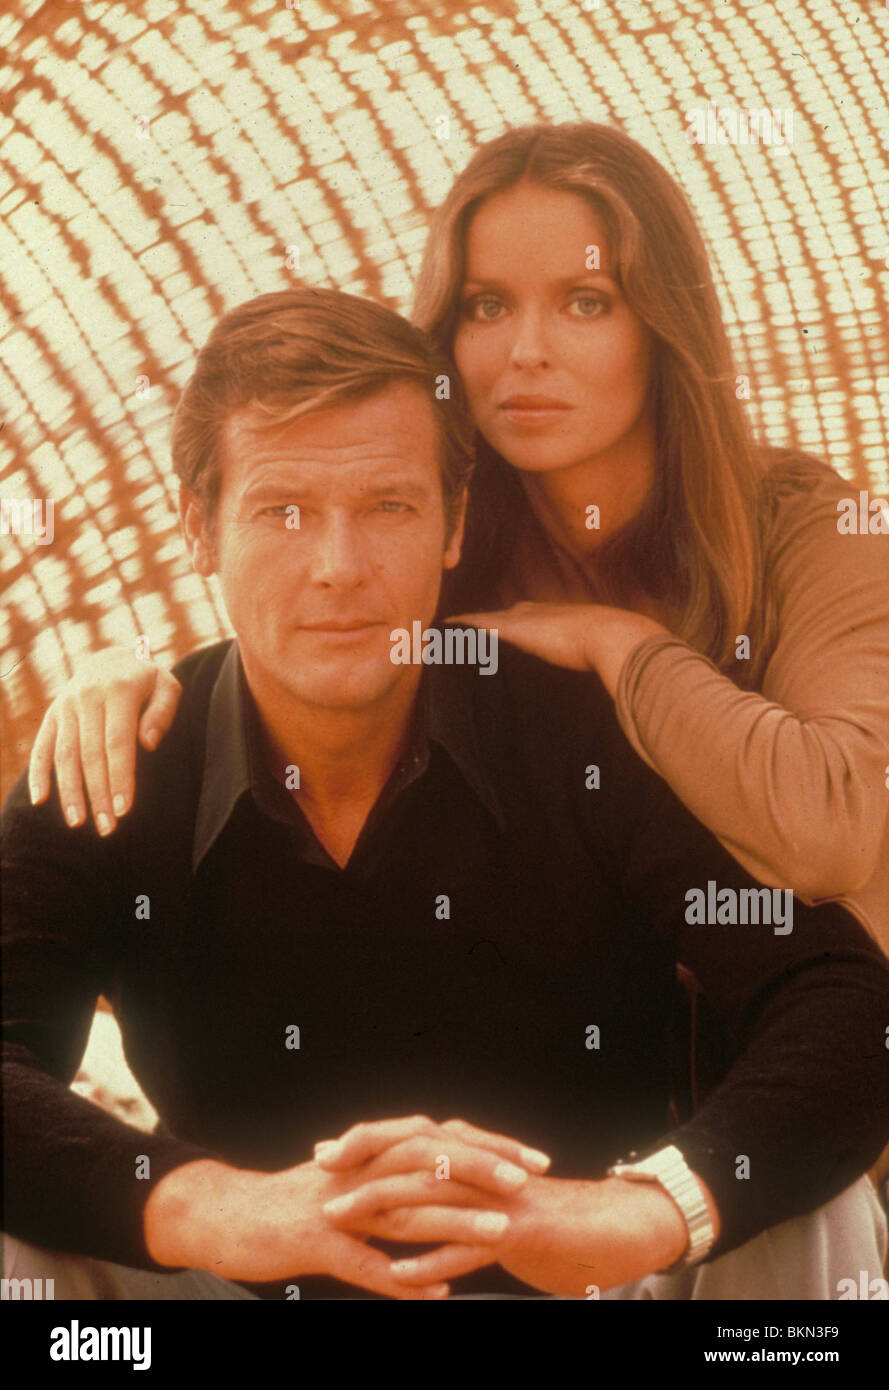 THE SPY WHO LOVED ME (1977) ROGER MOORE, BARBARA BACH CREDIT EON SLM 086 - Stock Image